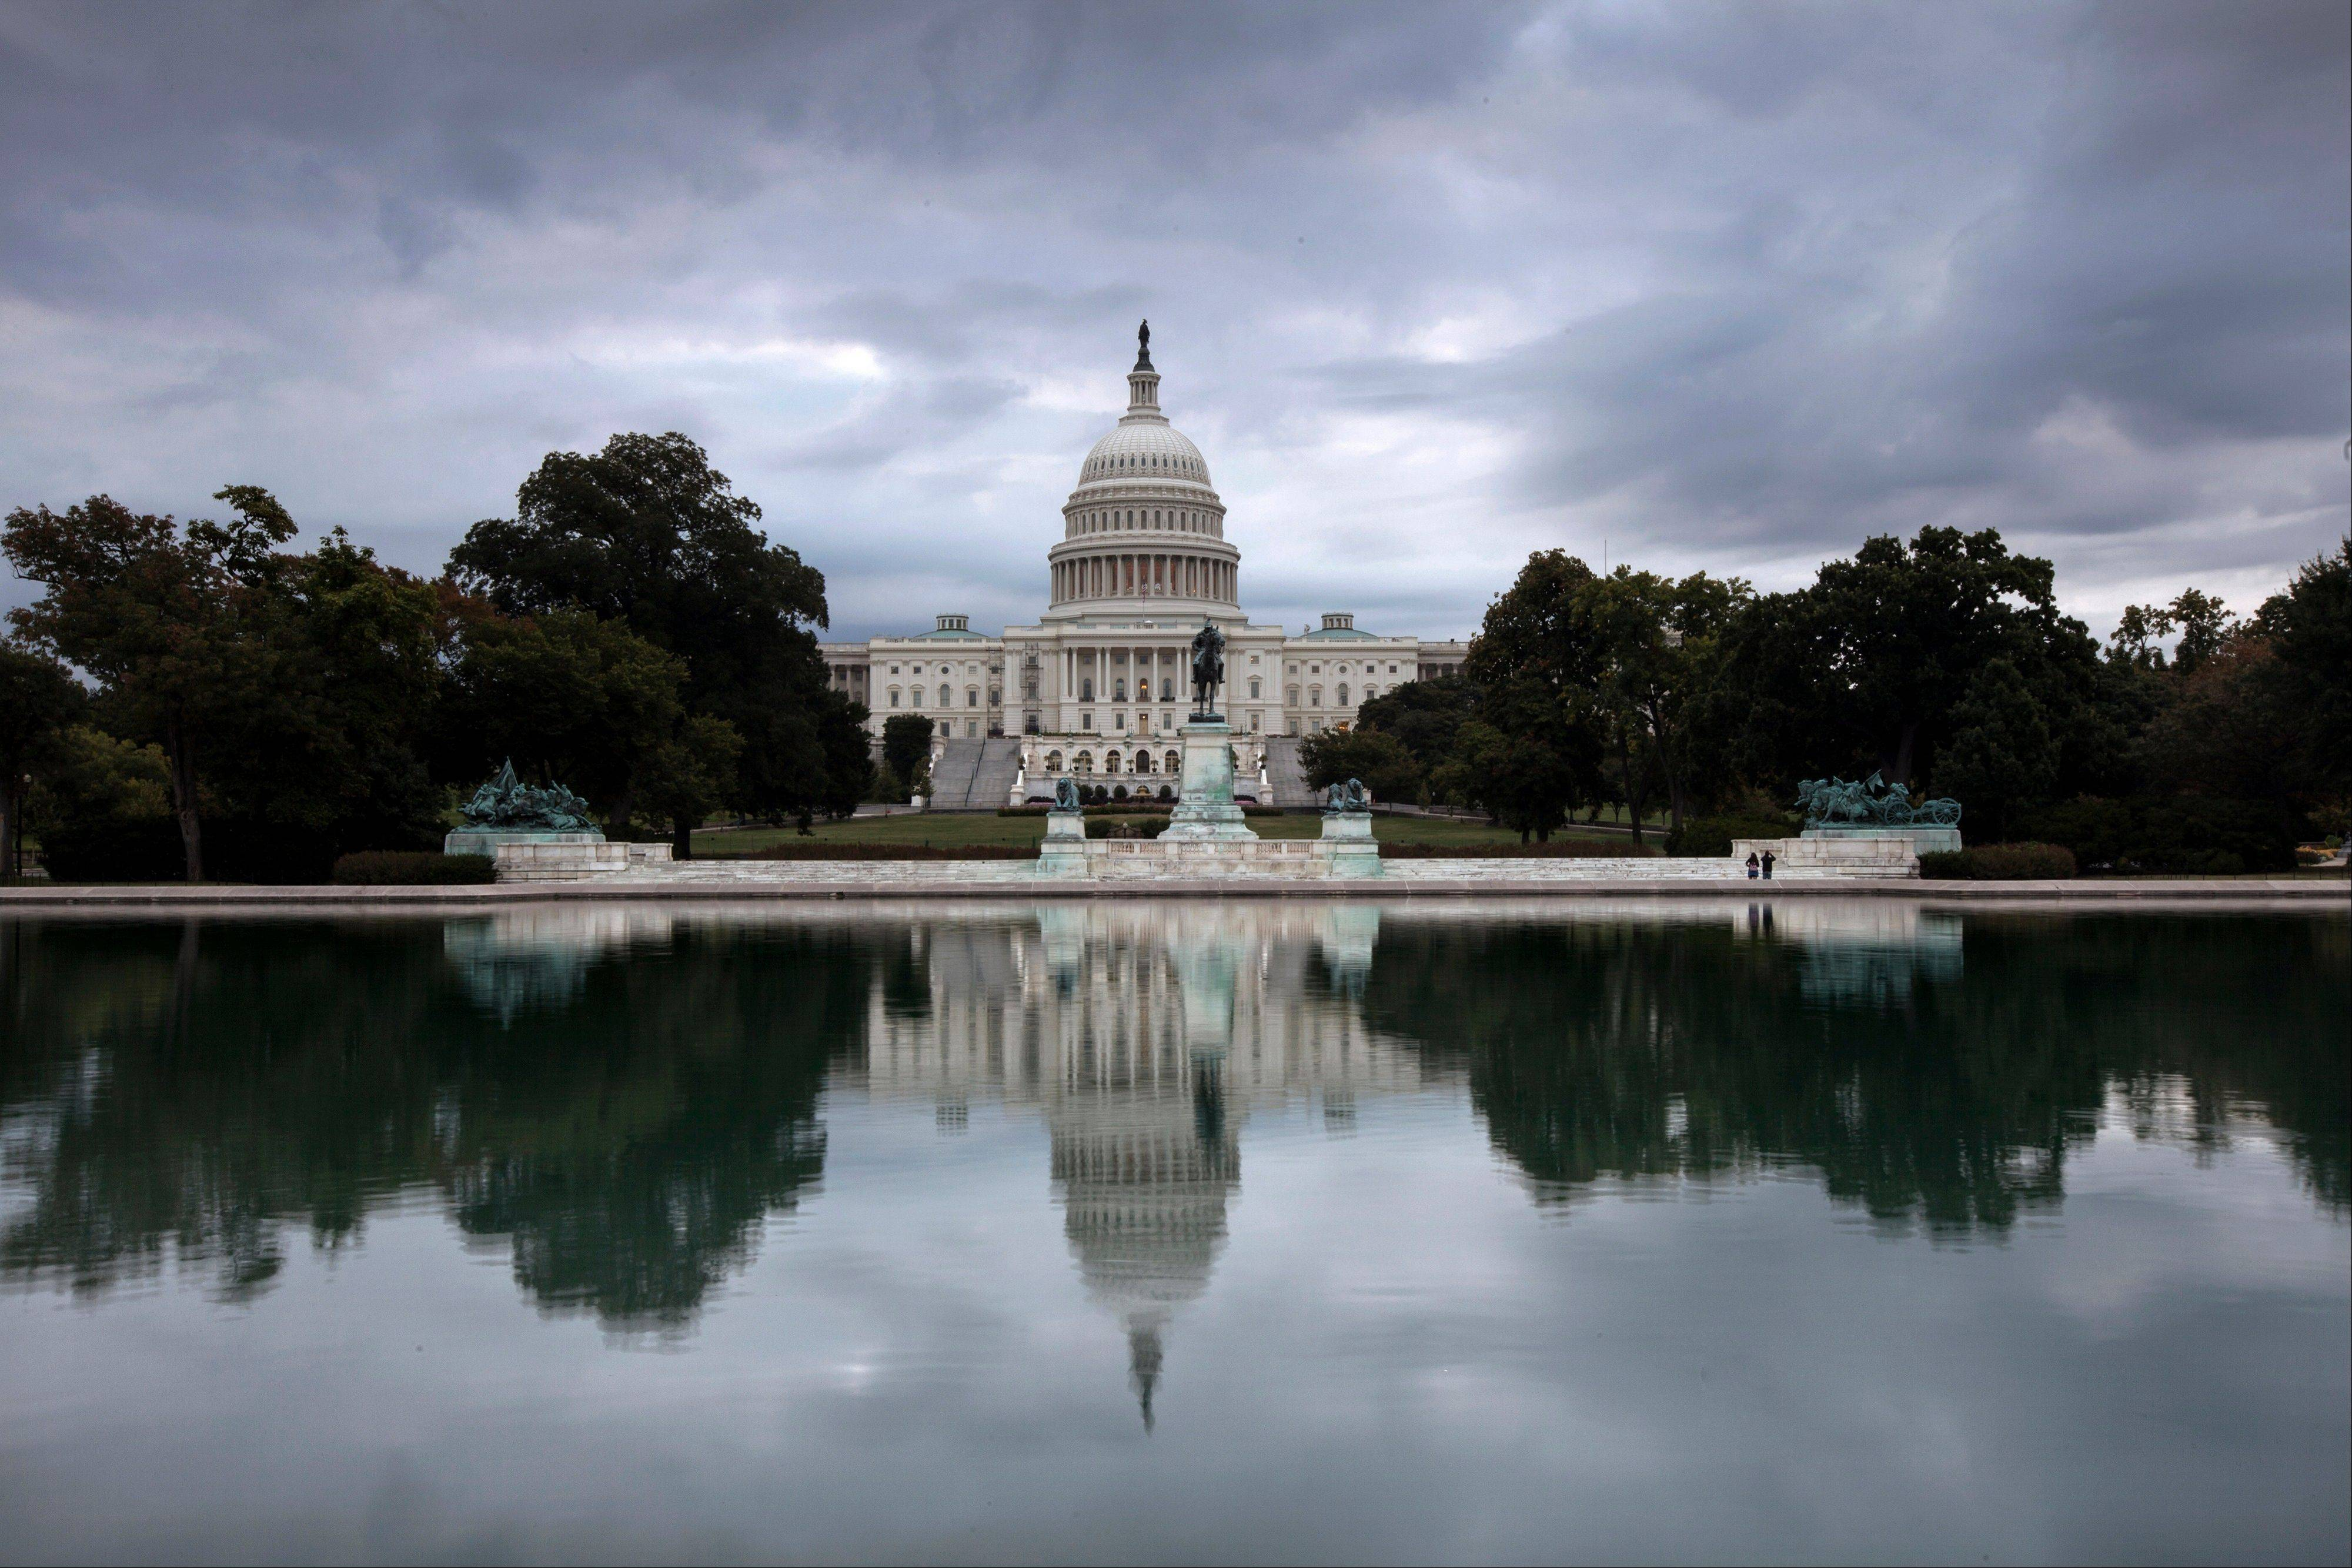 Storm clouds hang over Capitol Hill in Washington Friday as the Republican-controlled House and the Democrat-controlled Senate stand at an impasse with Congress continuing to struggle over how to fund the government and prevent a possible shutdown. Congress failed to avert a shutdown Monday.